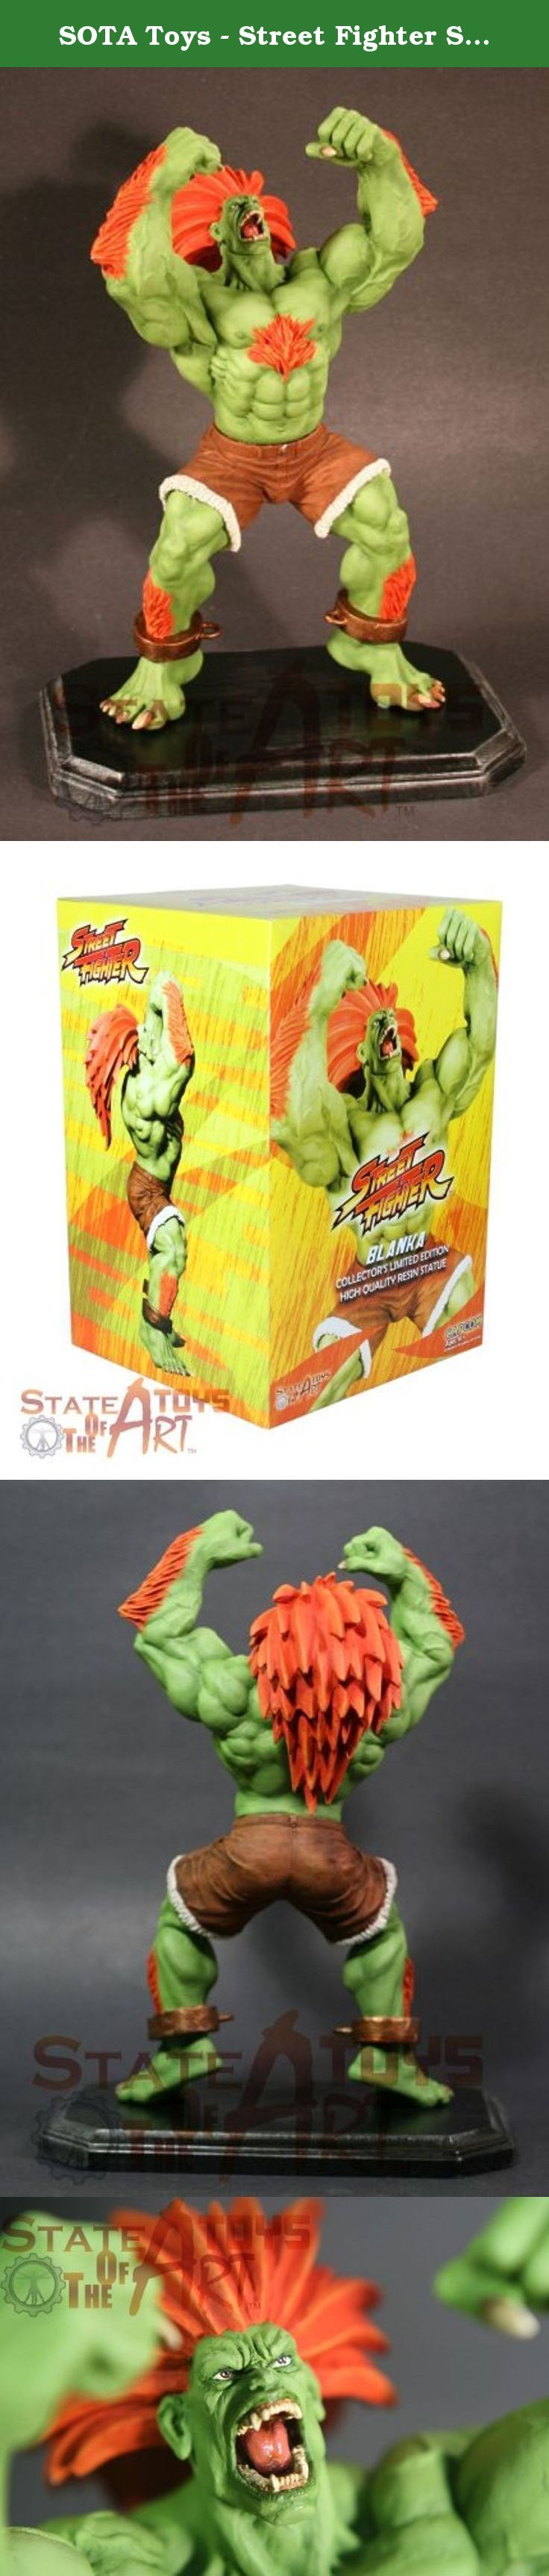 SOTA Toys - Street Fighter Statue Blanka 30 cm. SOTA is thrilled to announce the next statue in it's ongoing Street Fighter resin line: BLANKA! This statue stands approximately twelve inches tall, sports a detailed sculpt and an insane amount of detail! Sculpted by famed SOTA sculptor Alexi 'Trapjaw' Bustamante this figure is limited to 500 pieces world wide! Get yours while you can.